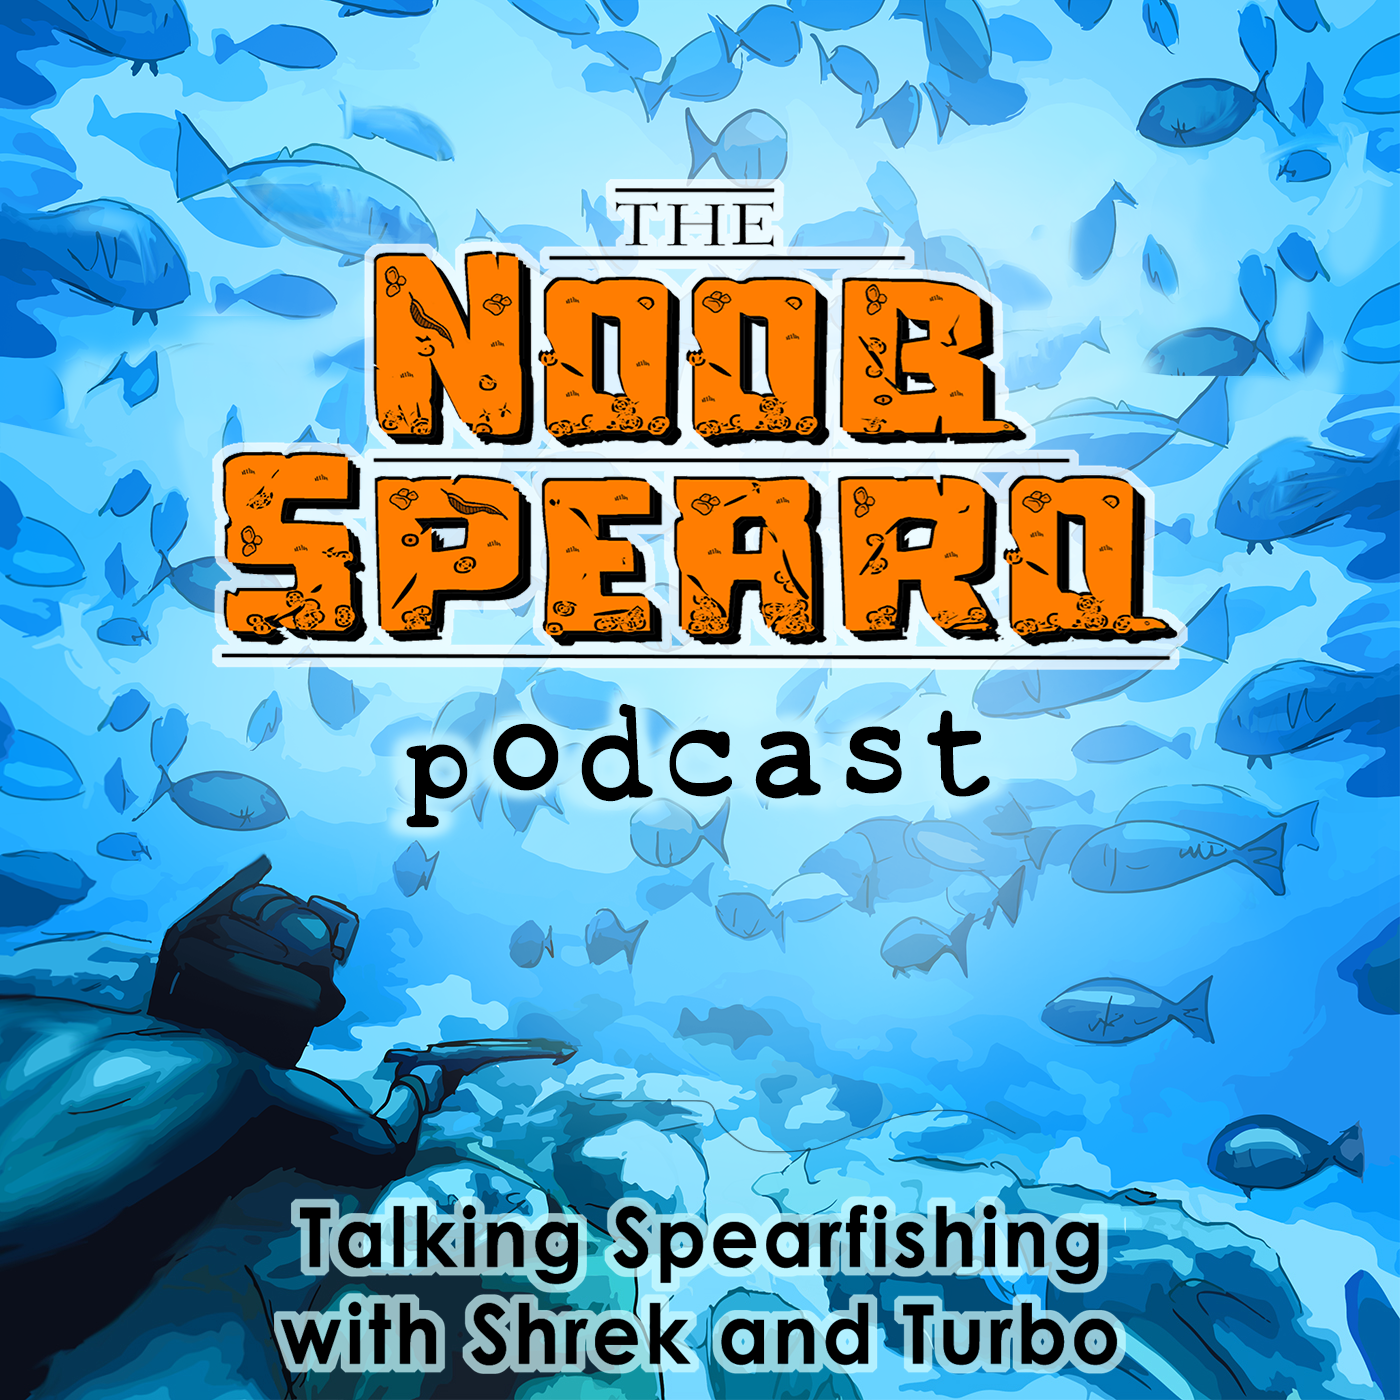 Noob Spearo Podcast | Spearfishing Tips, Stories and Interviews